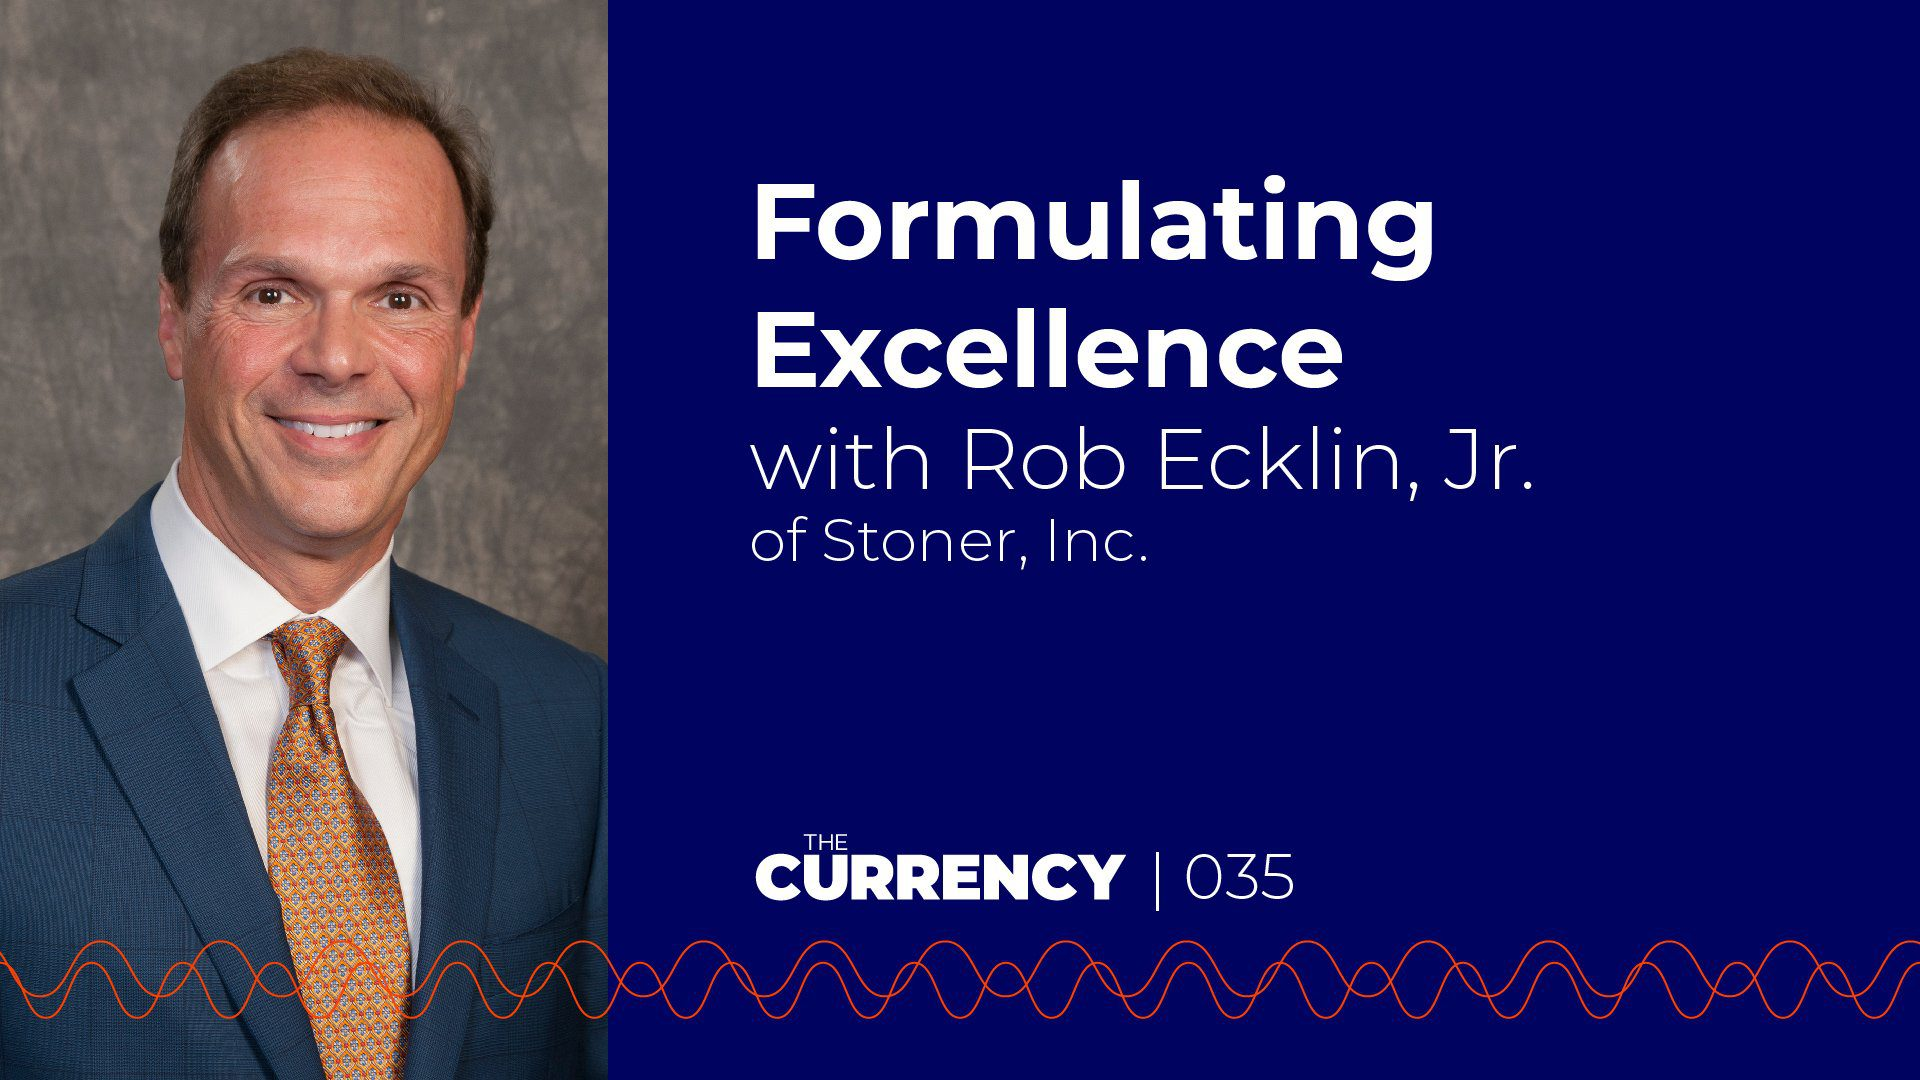 The Currency: [035] Formulating Excellence with Rob Ecklin, Jr.